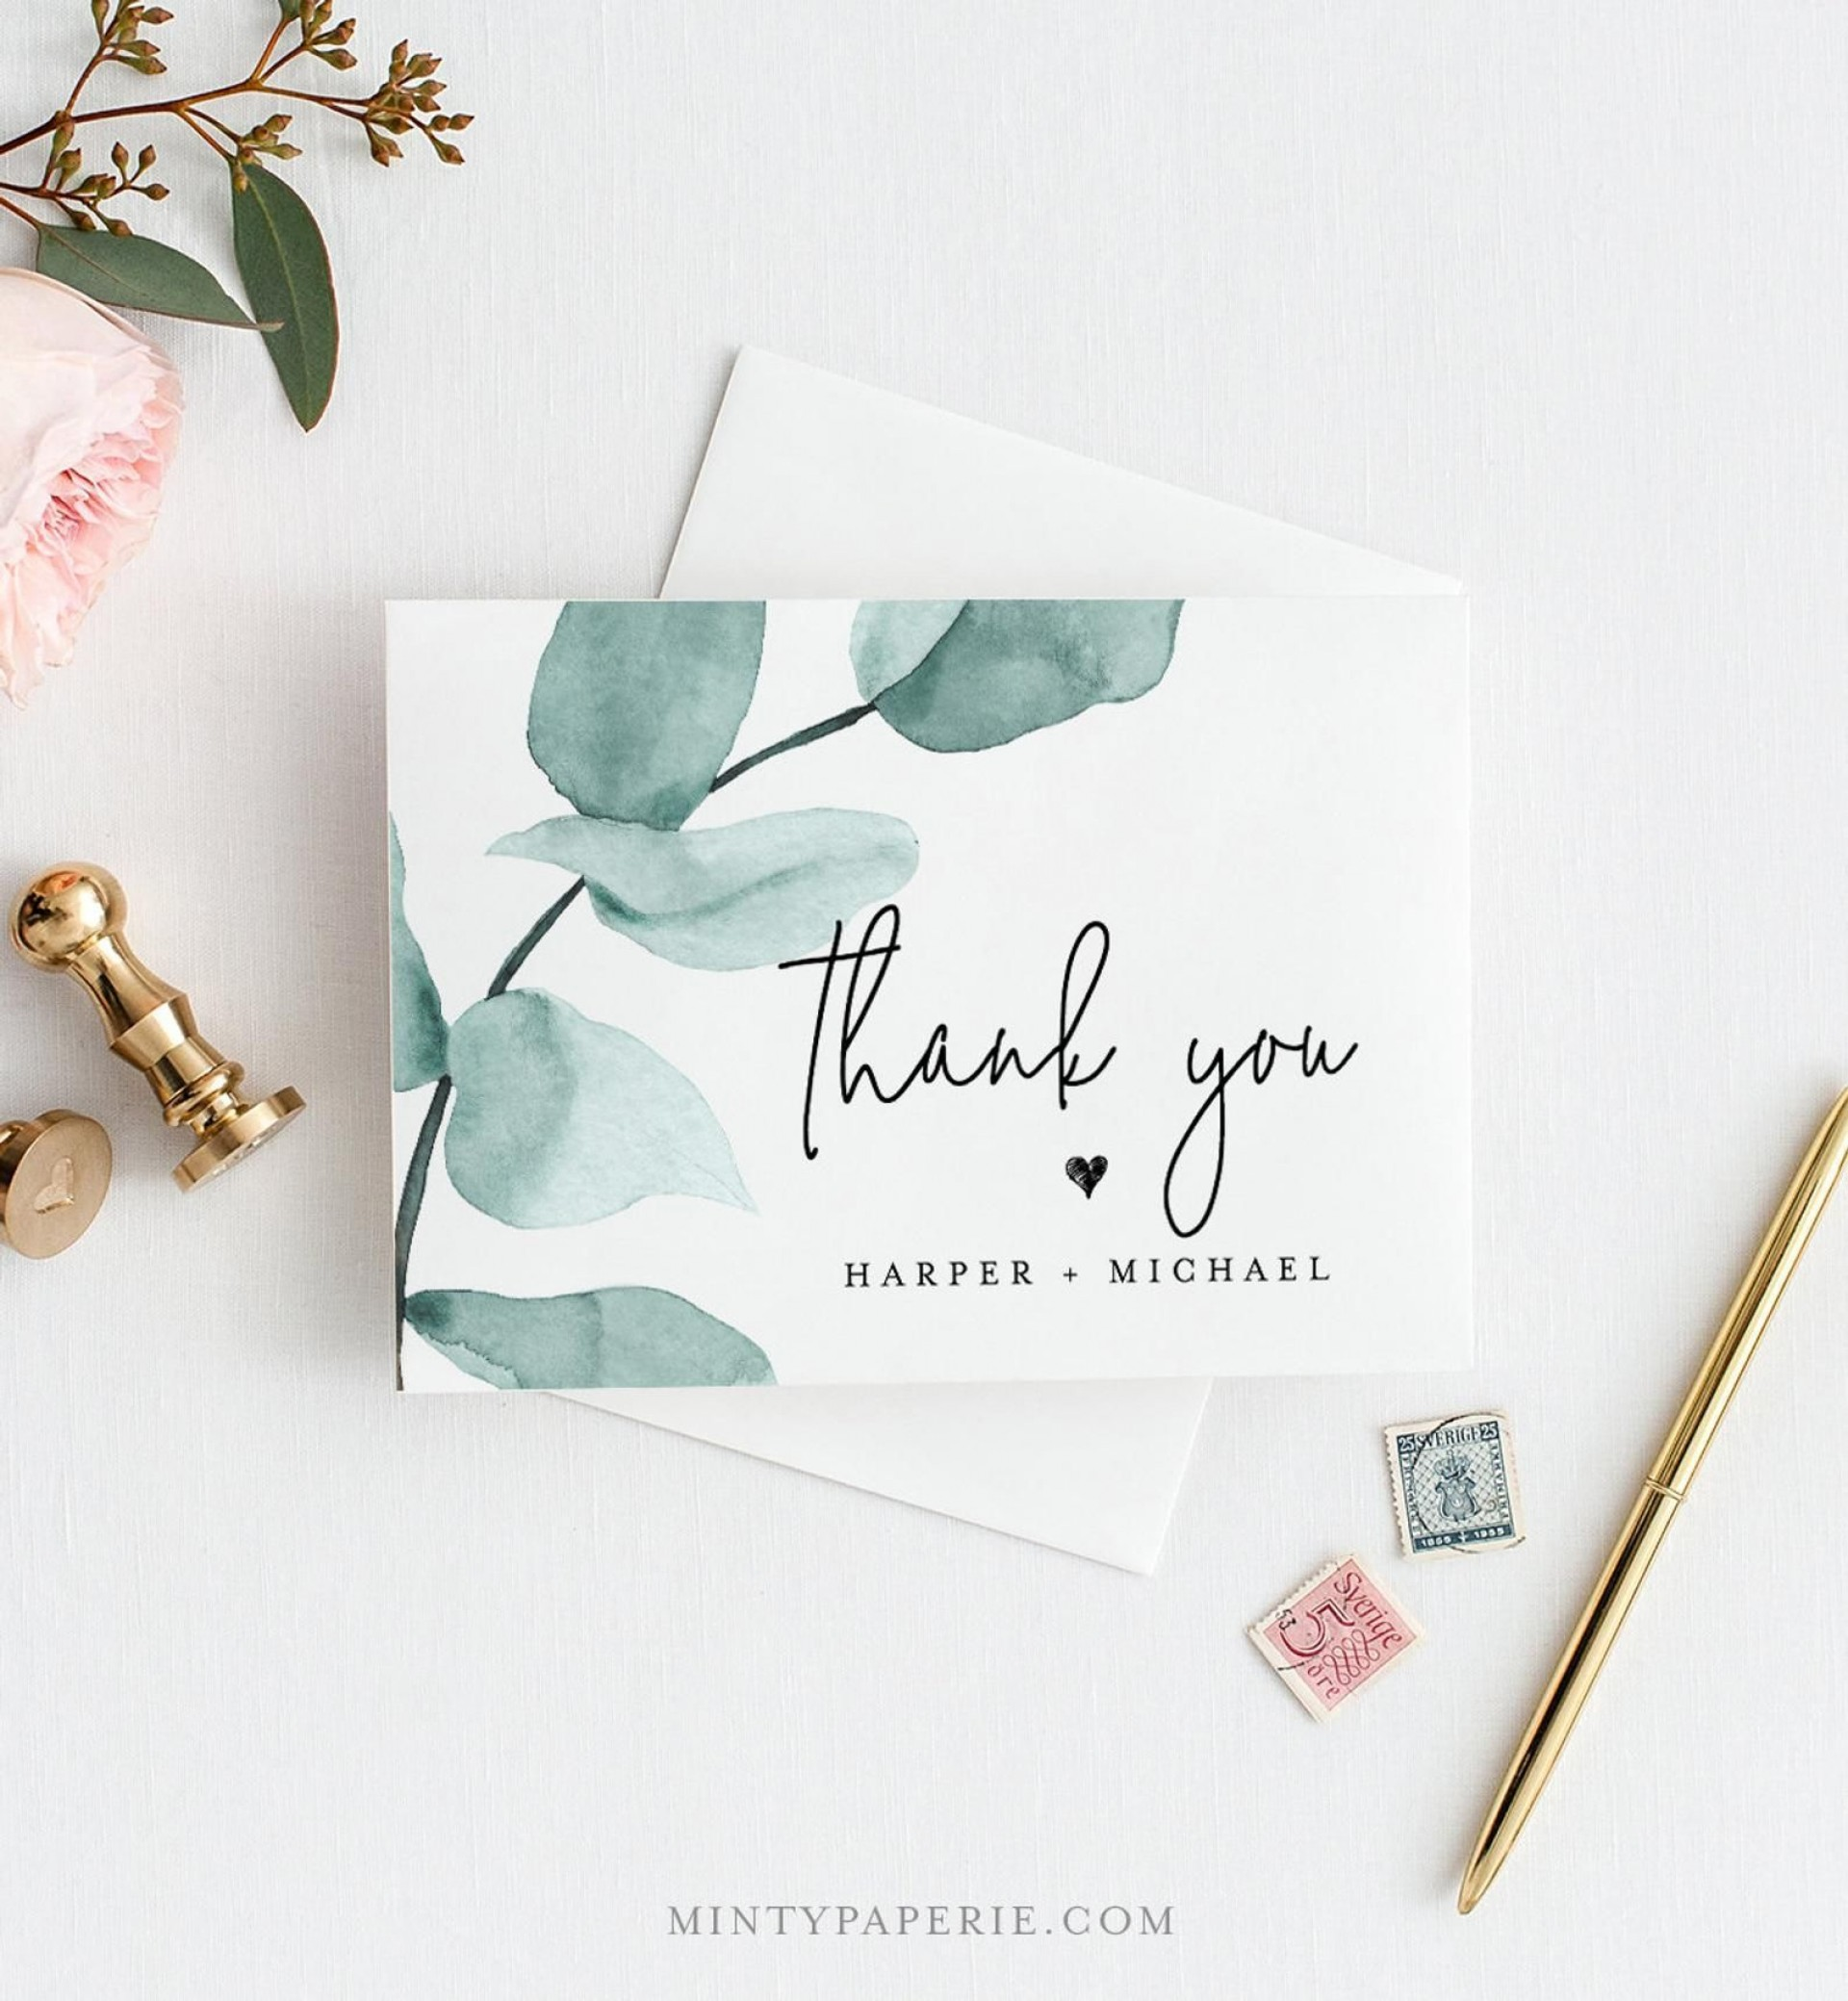 004 Impressive Diy Wedding Thank You Card Template Picture  Templates1920